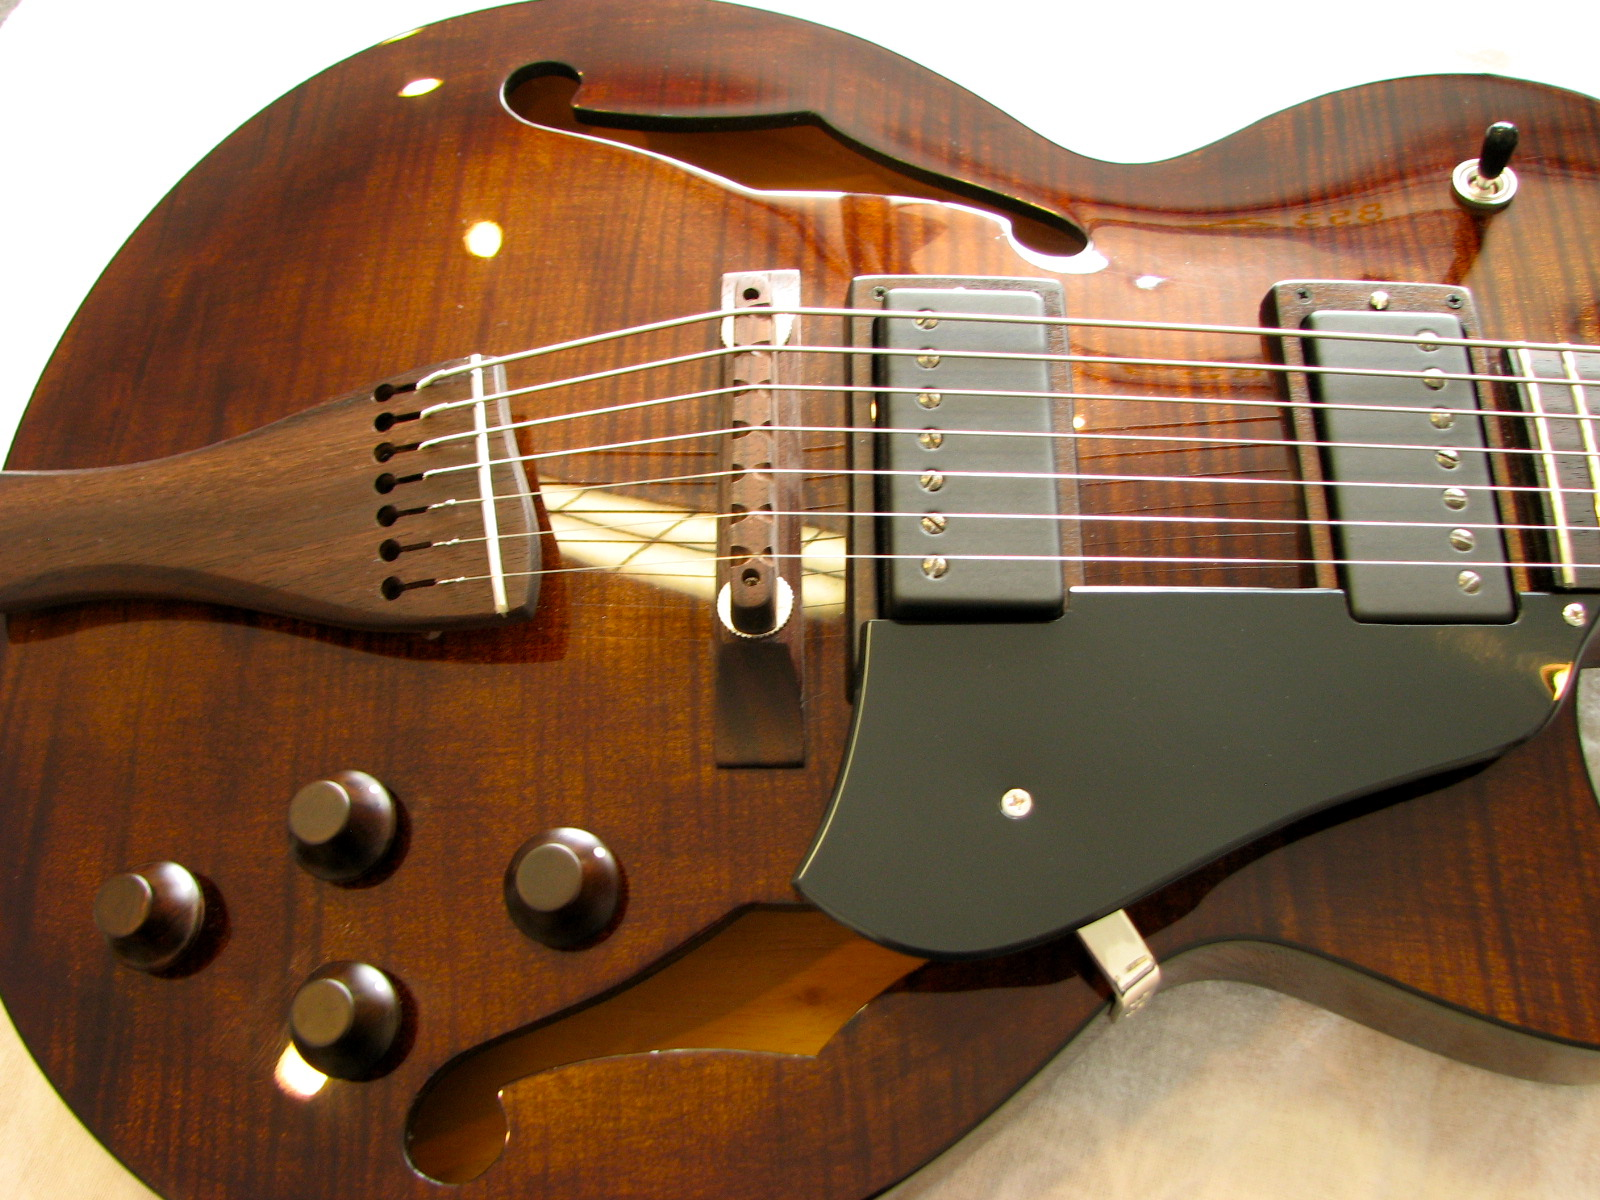 A pair of Seymour Duncan humbuckers flanked by a free-form pickguard